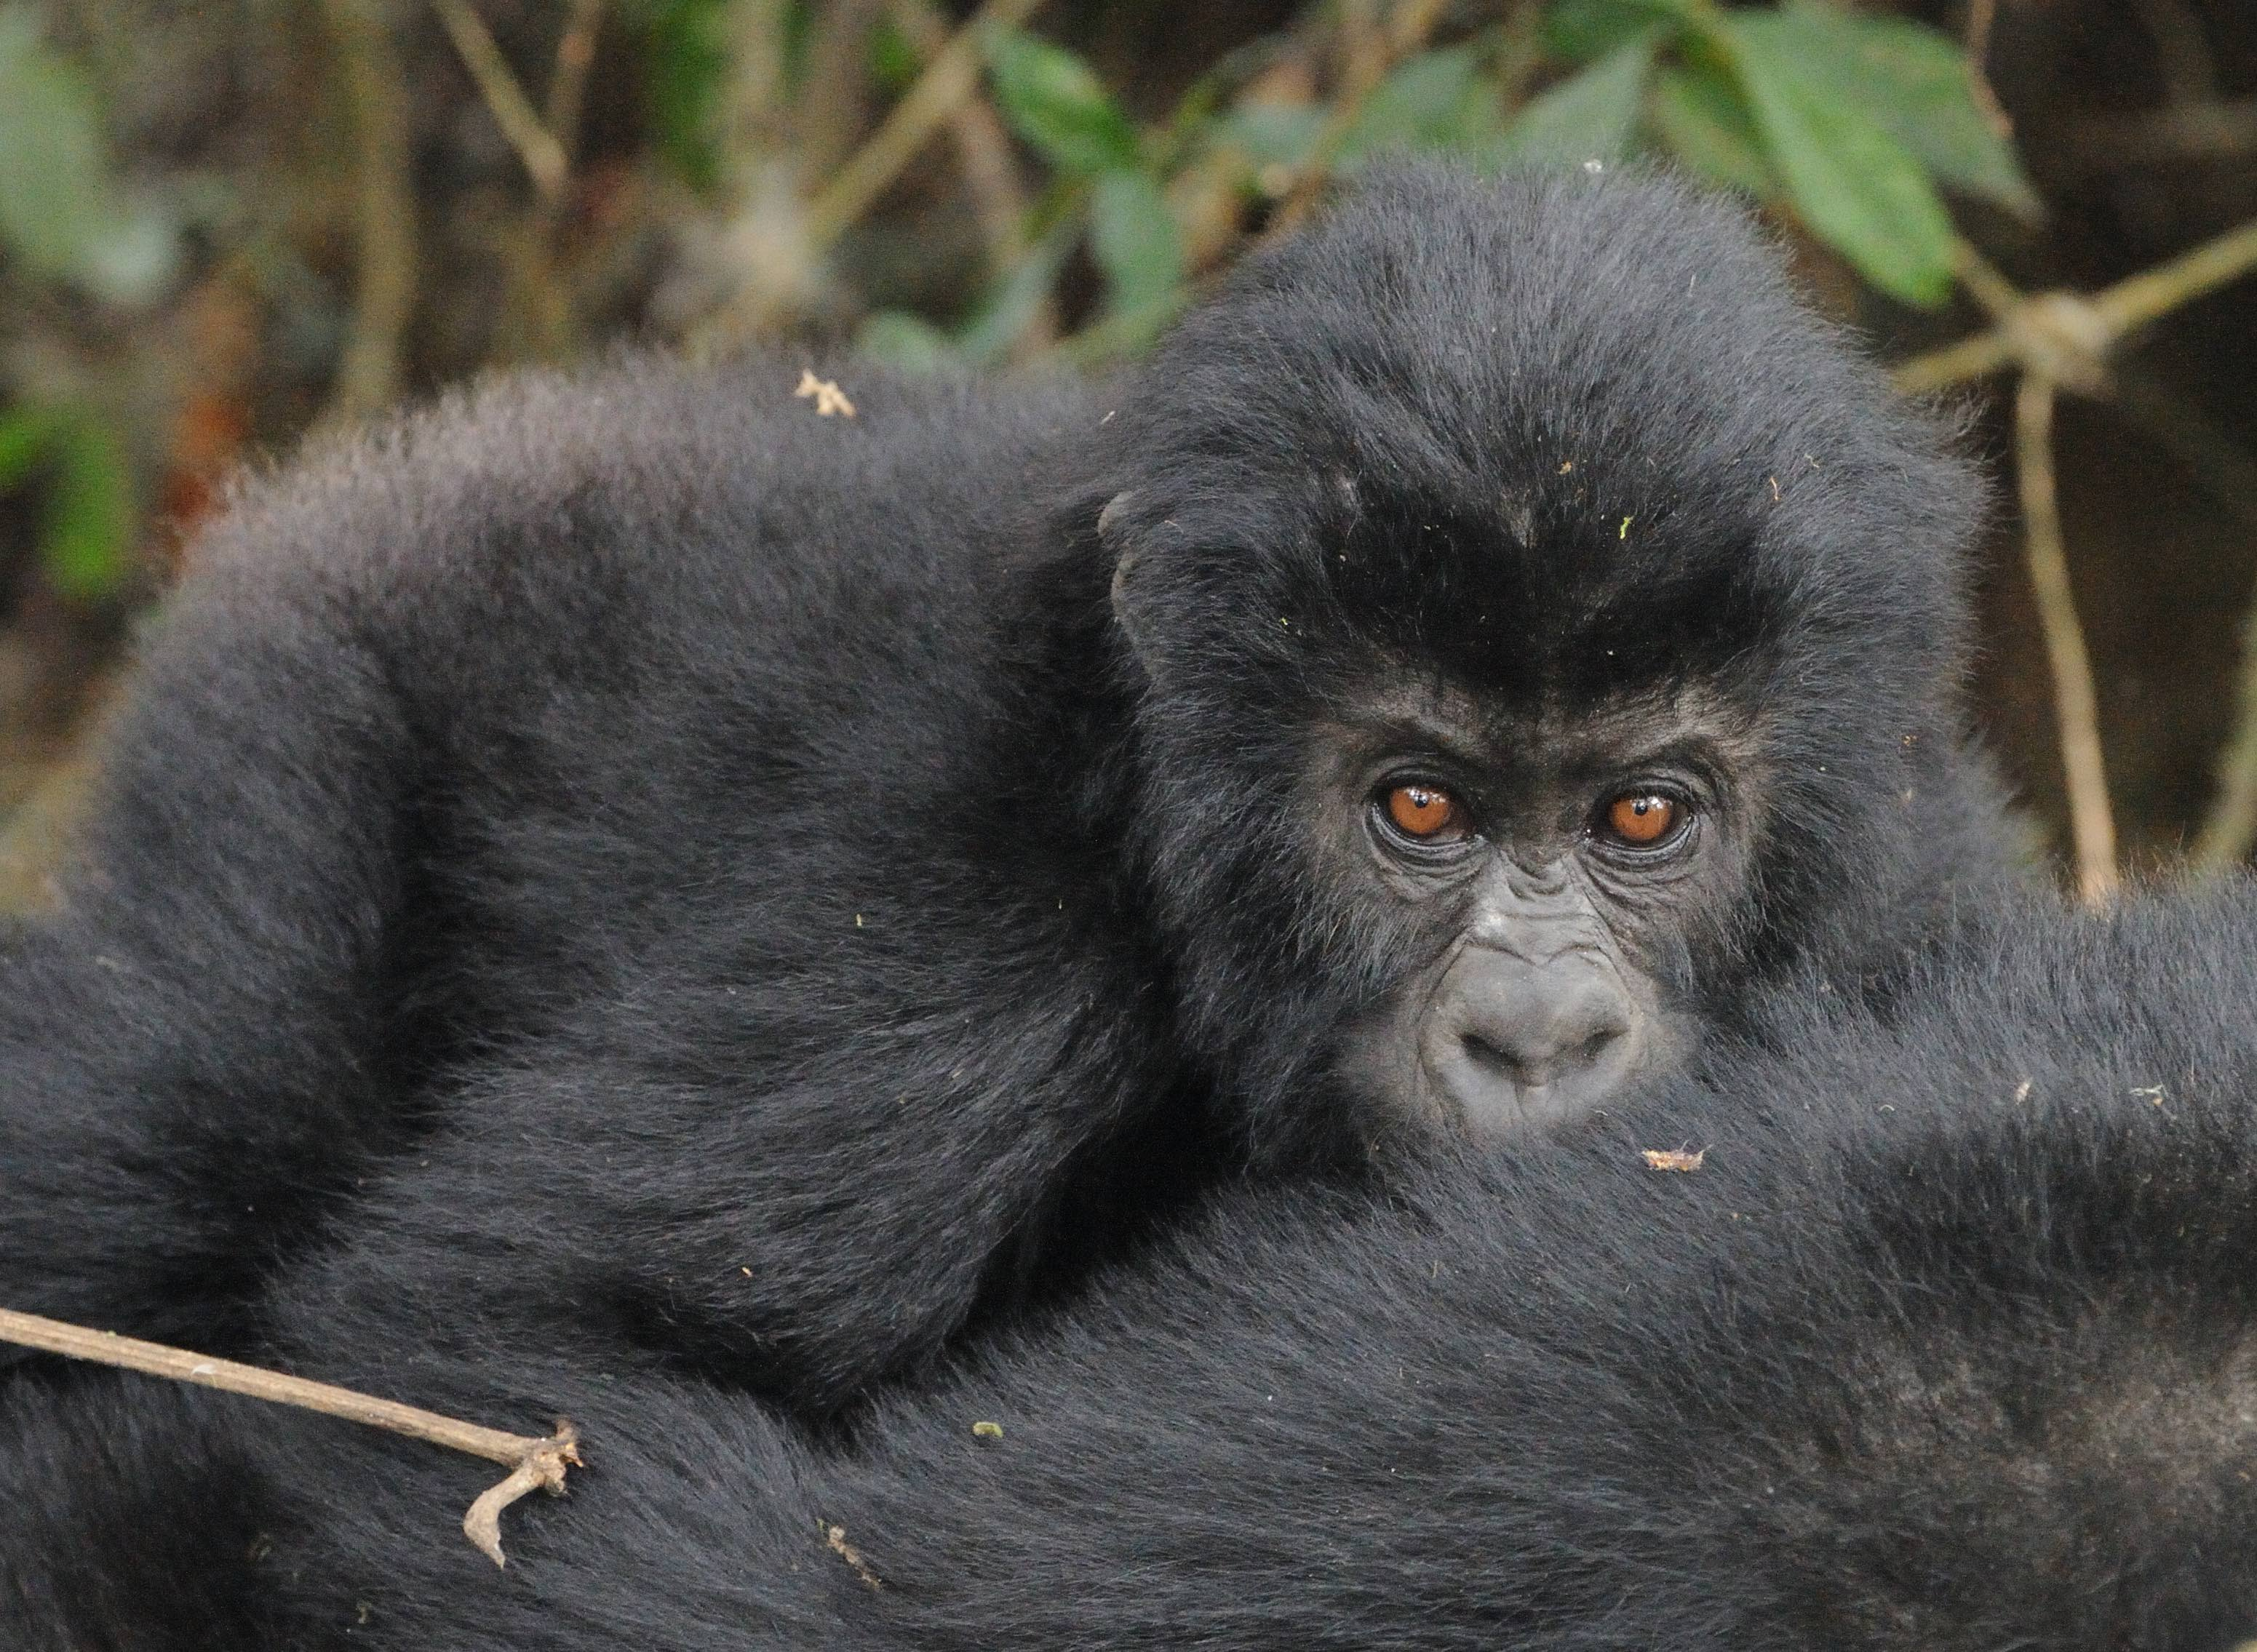 Reserve with rare gorillas finally protected